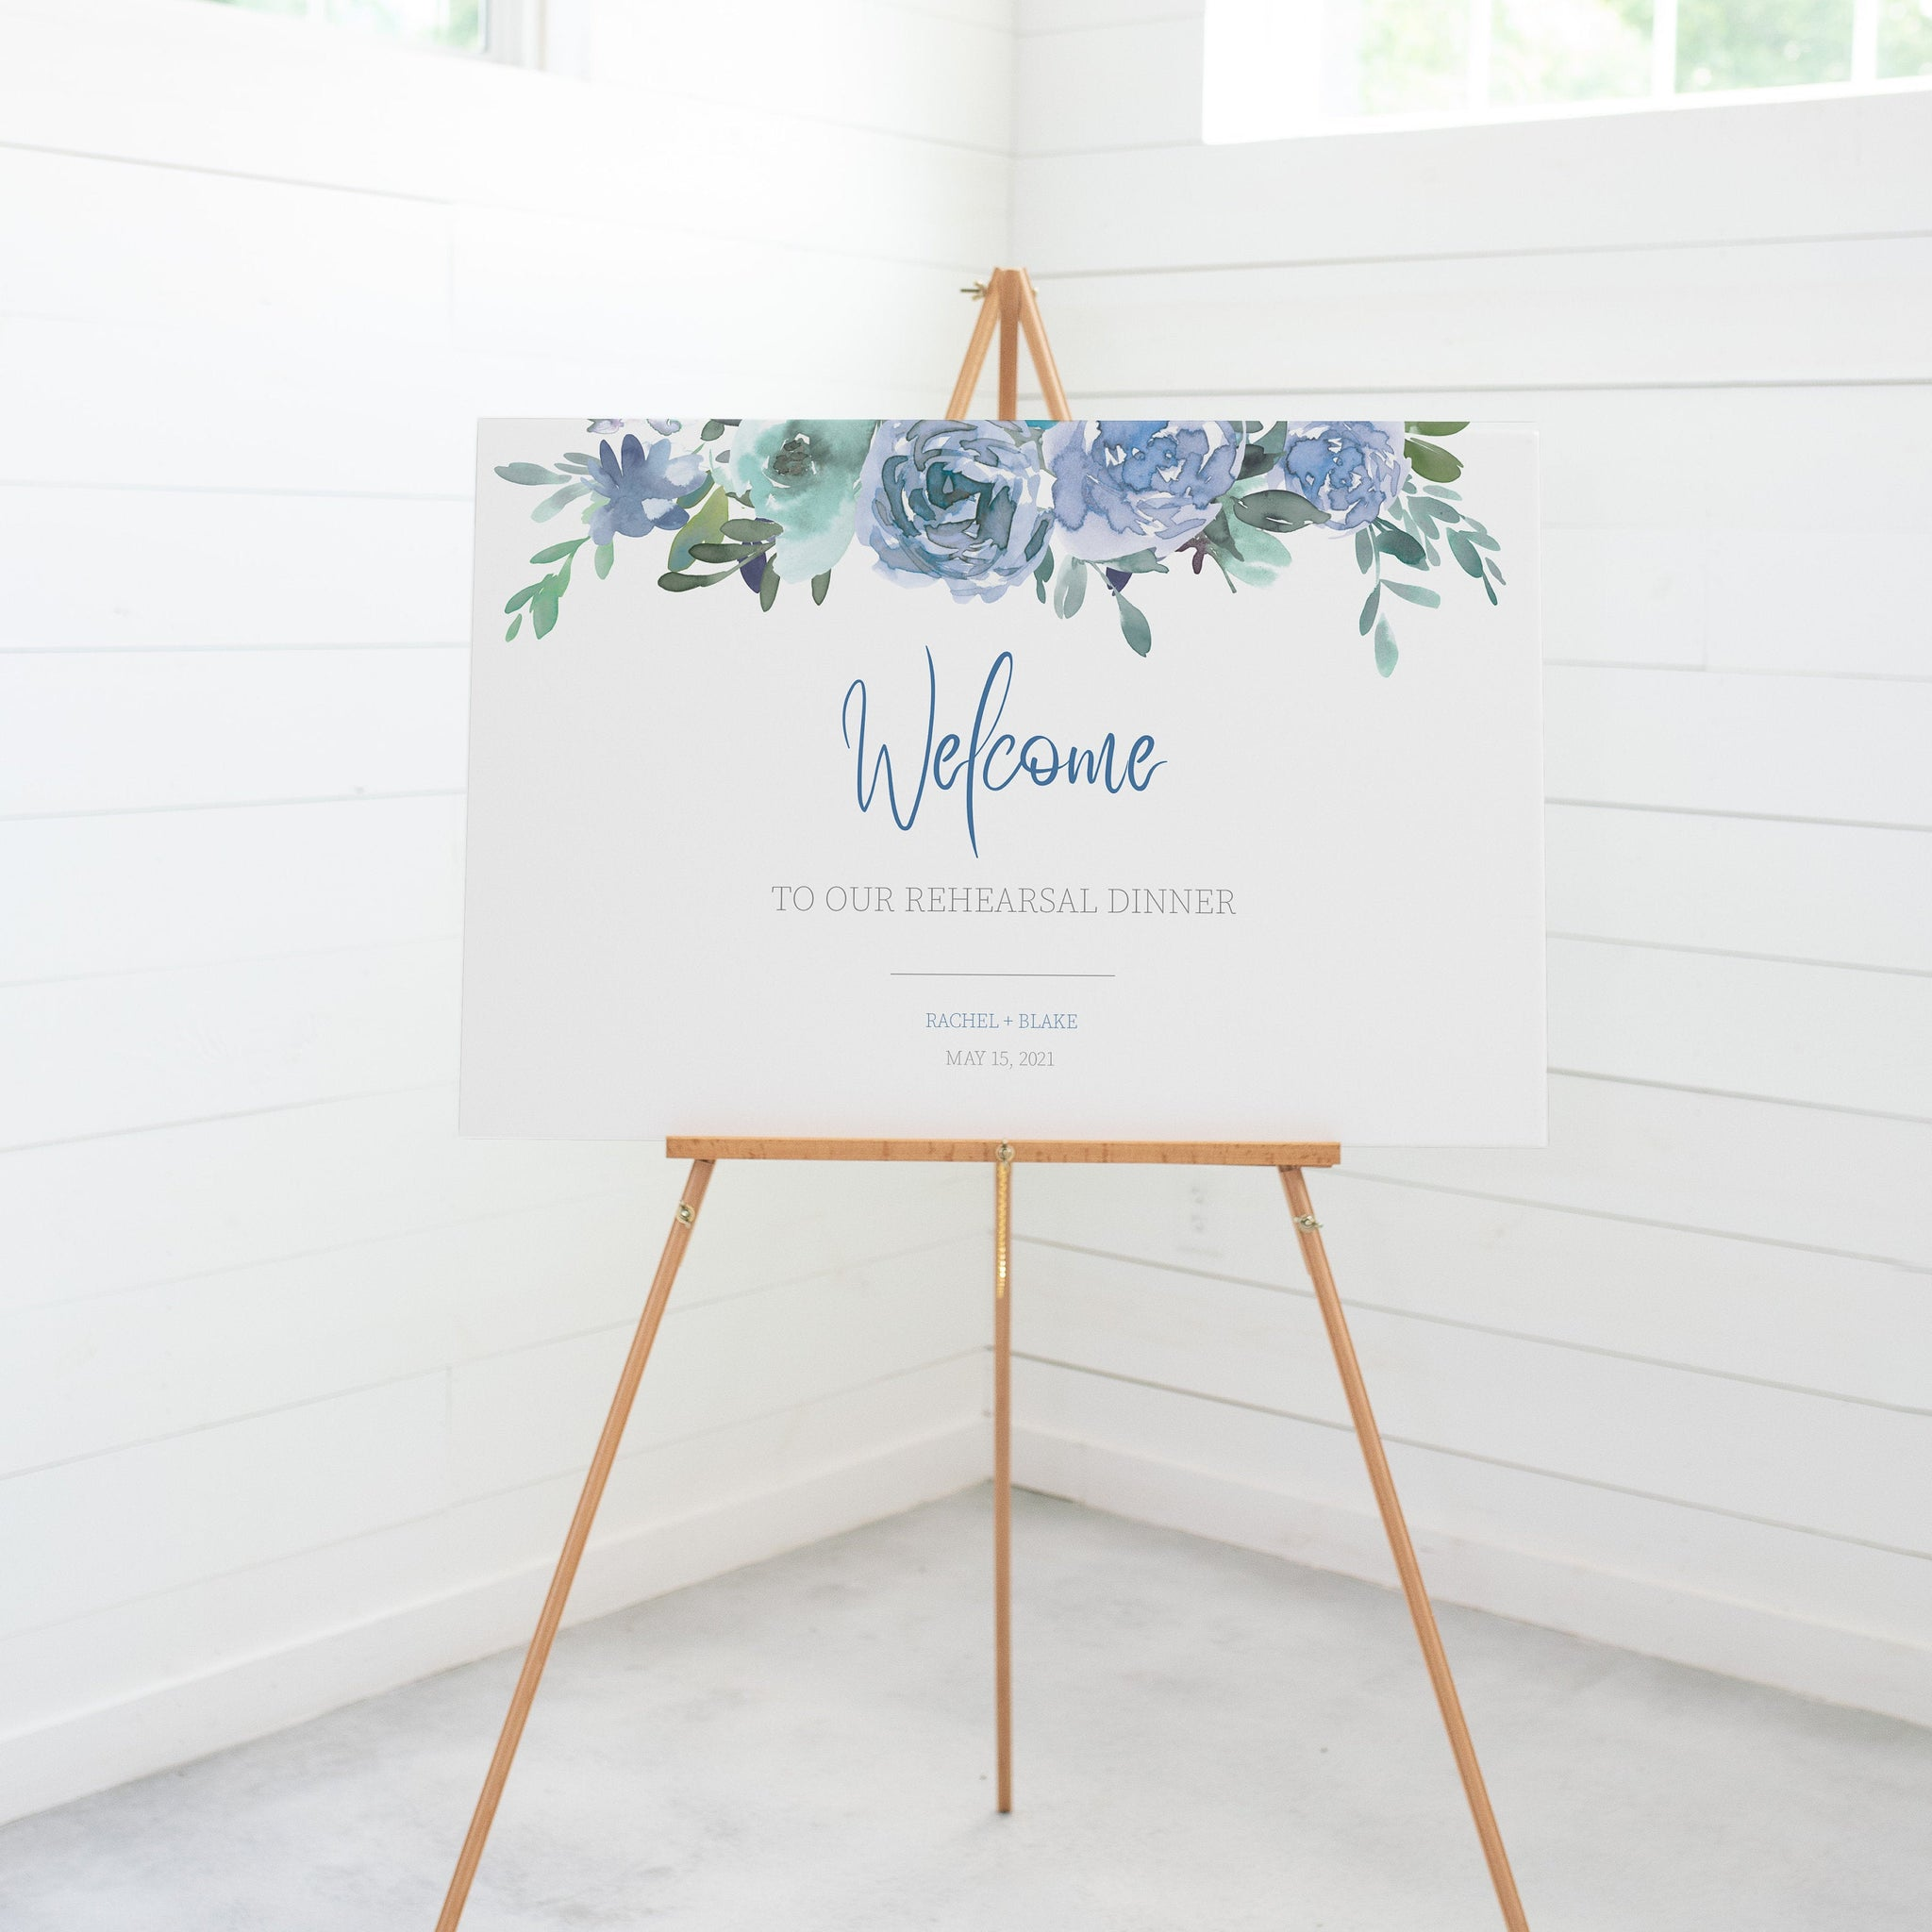 Wedding Rehearsal Dinner Welcome Sign Template, Large Welcome Sign Printable, Blue Floral Wedding Rehearsal Signs, DIGITAL DOWNLOAD - BF100